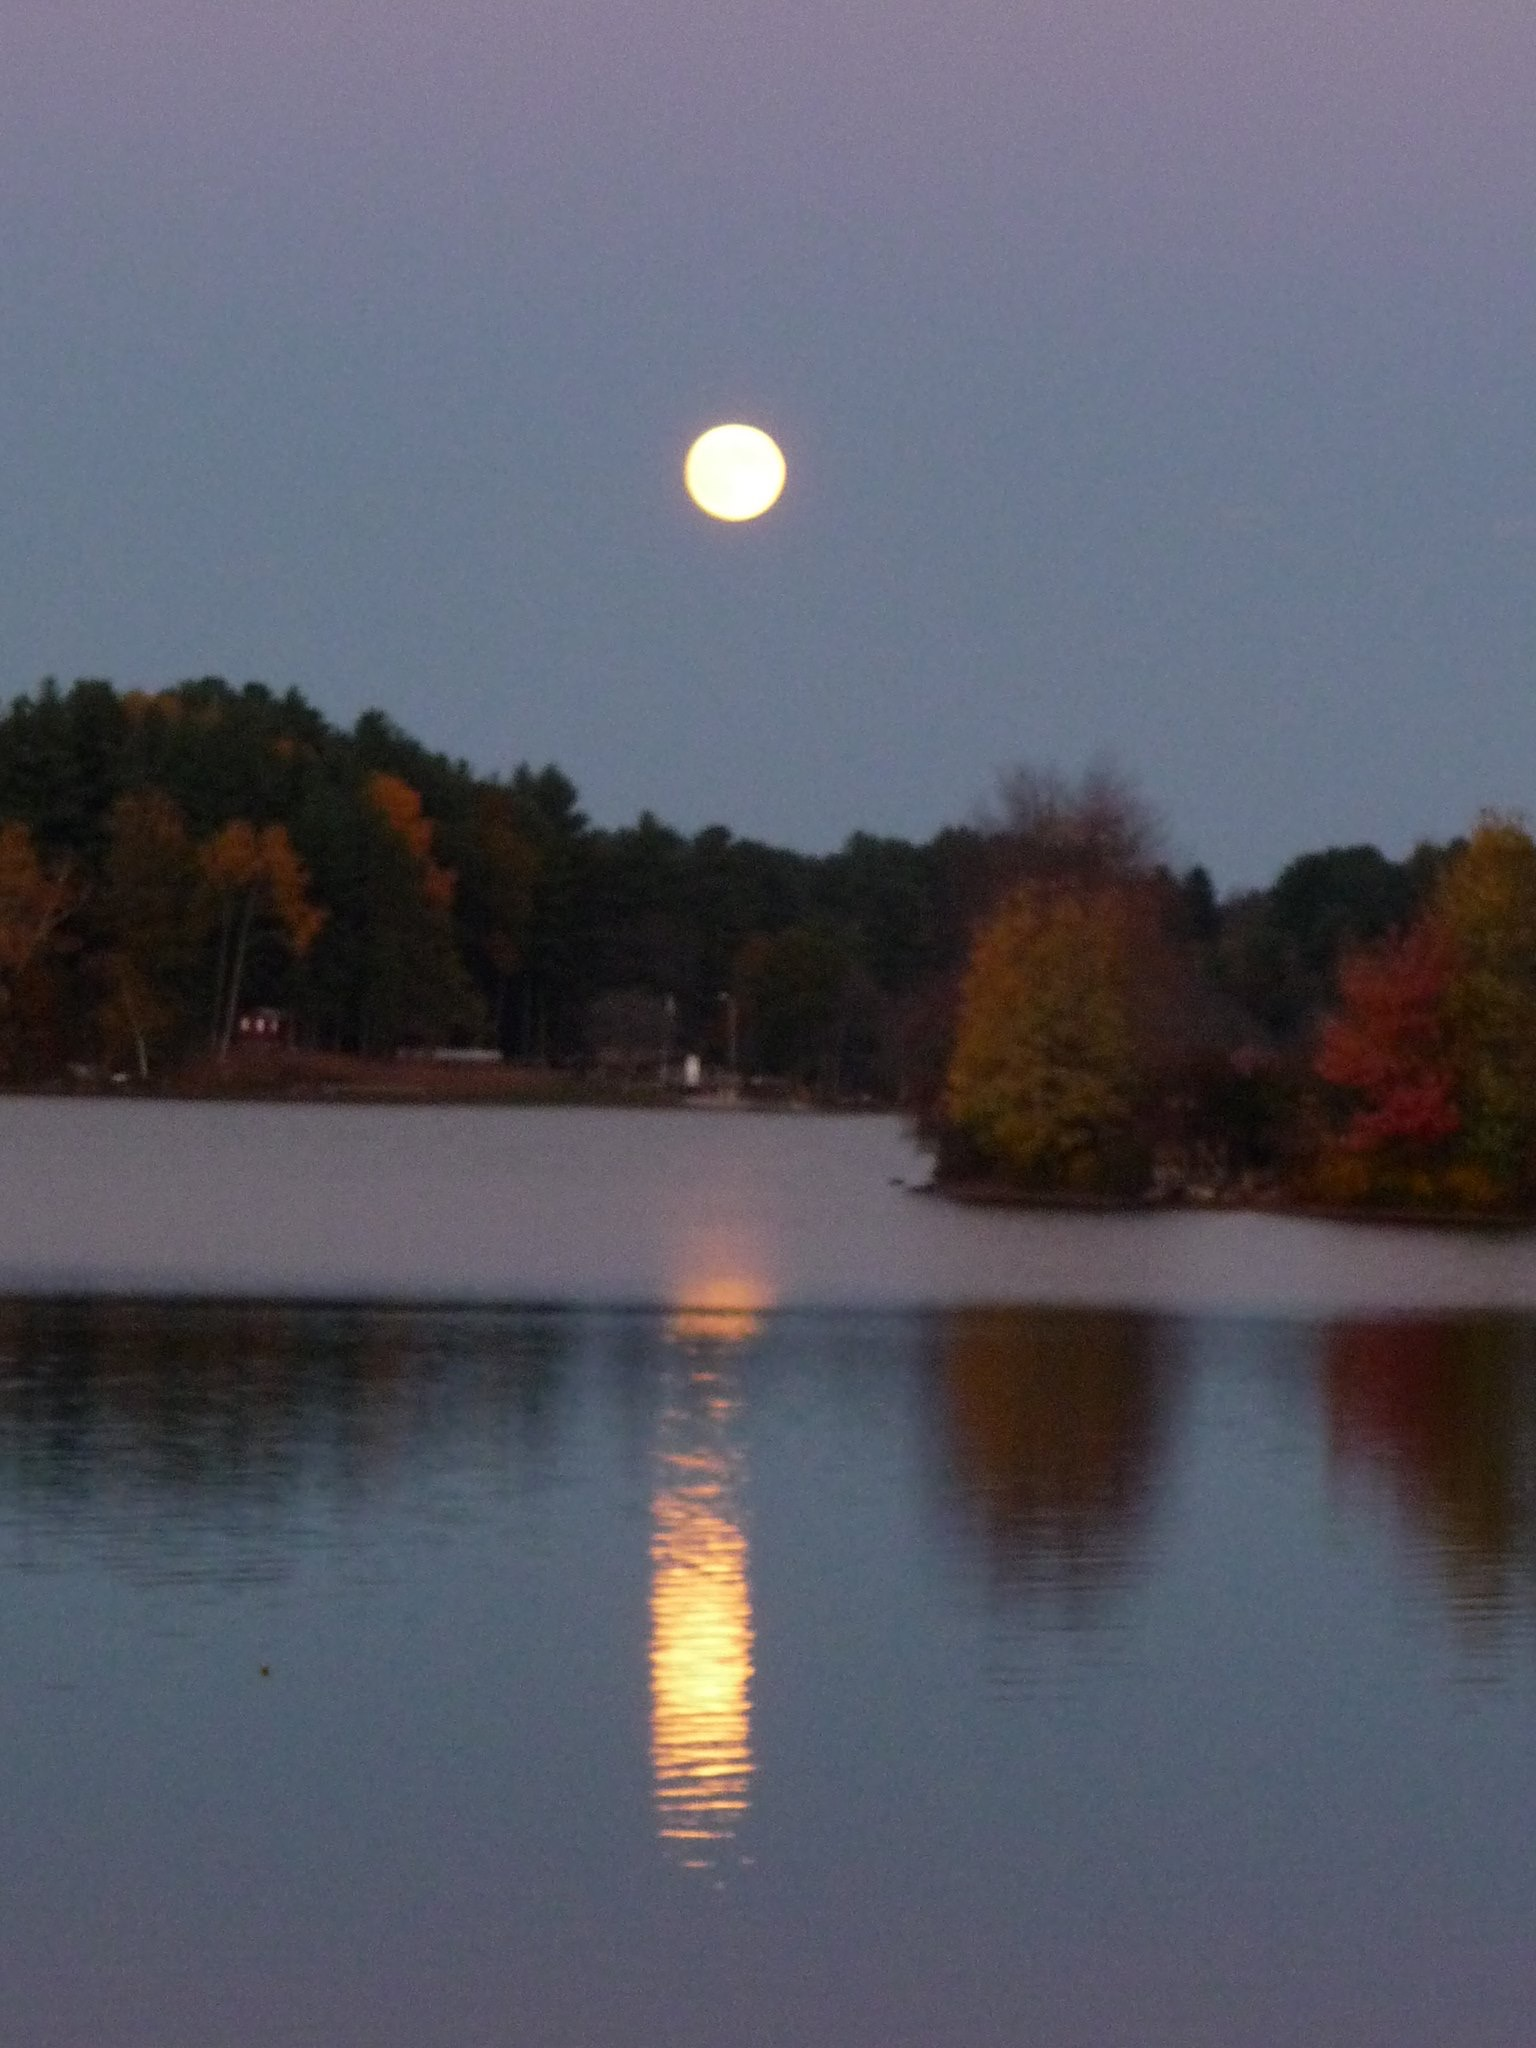 Full moon, fall 2013